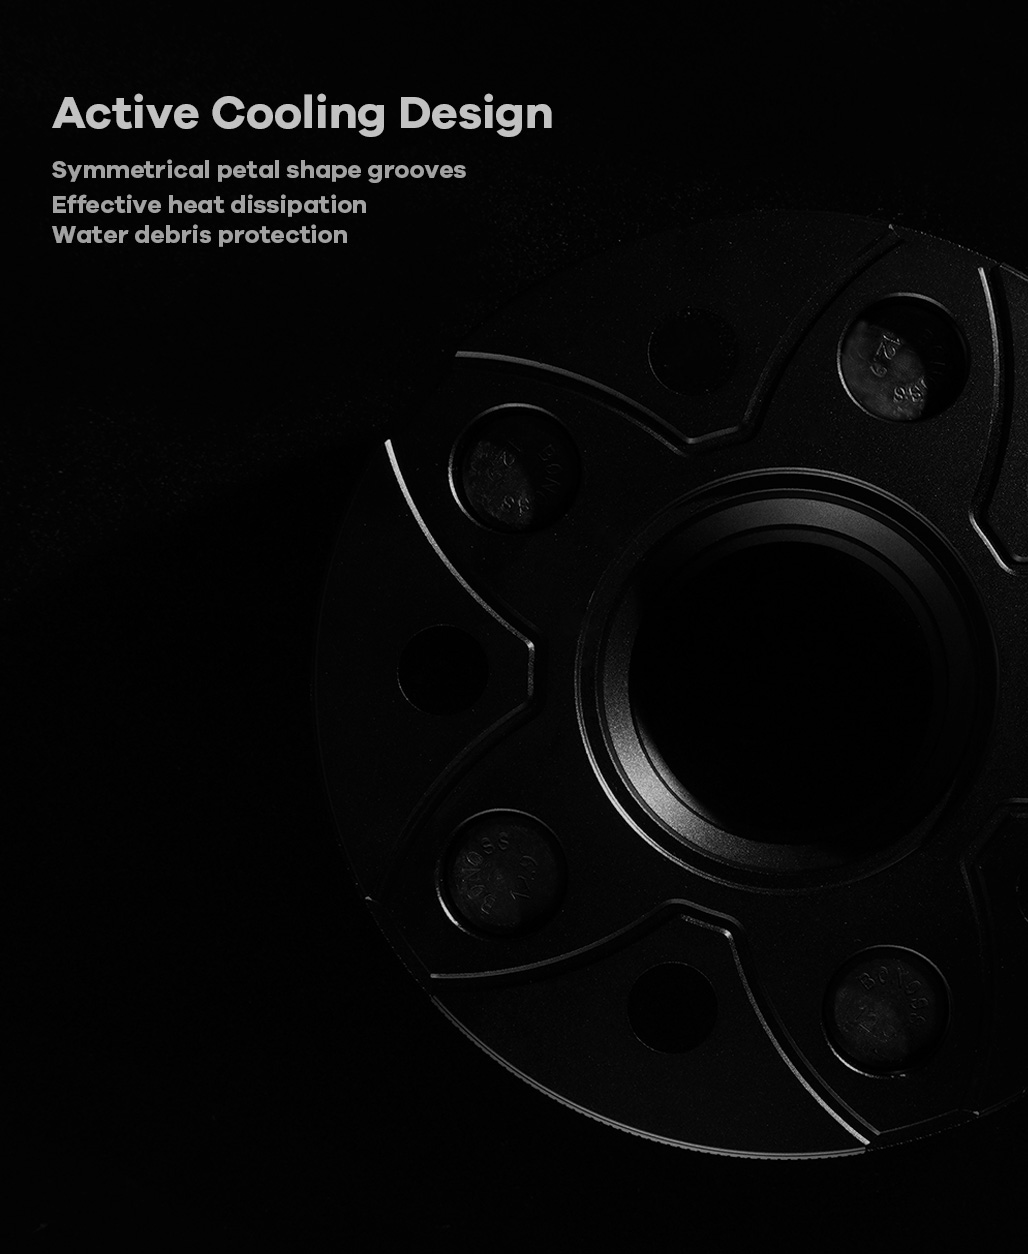 BONOSS Forged Active Cooling Wheel Spacers Hubcentric PCD5x100 CB57.1 AL6061-T6 for Chrysler PT Cruiser 2000-2010 (3)